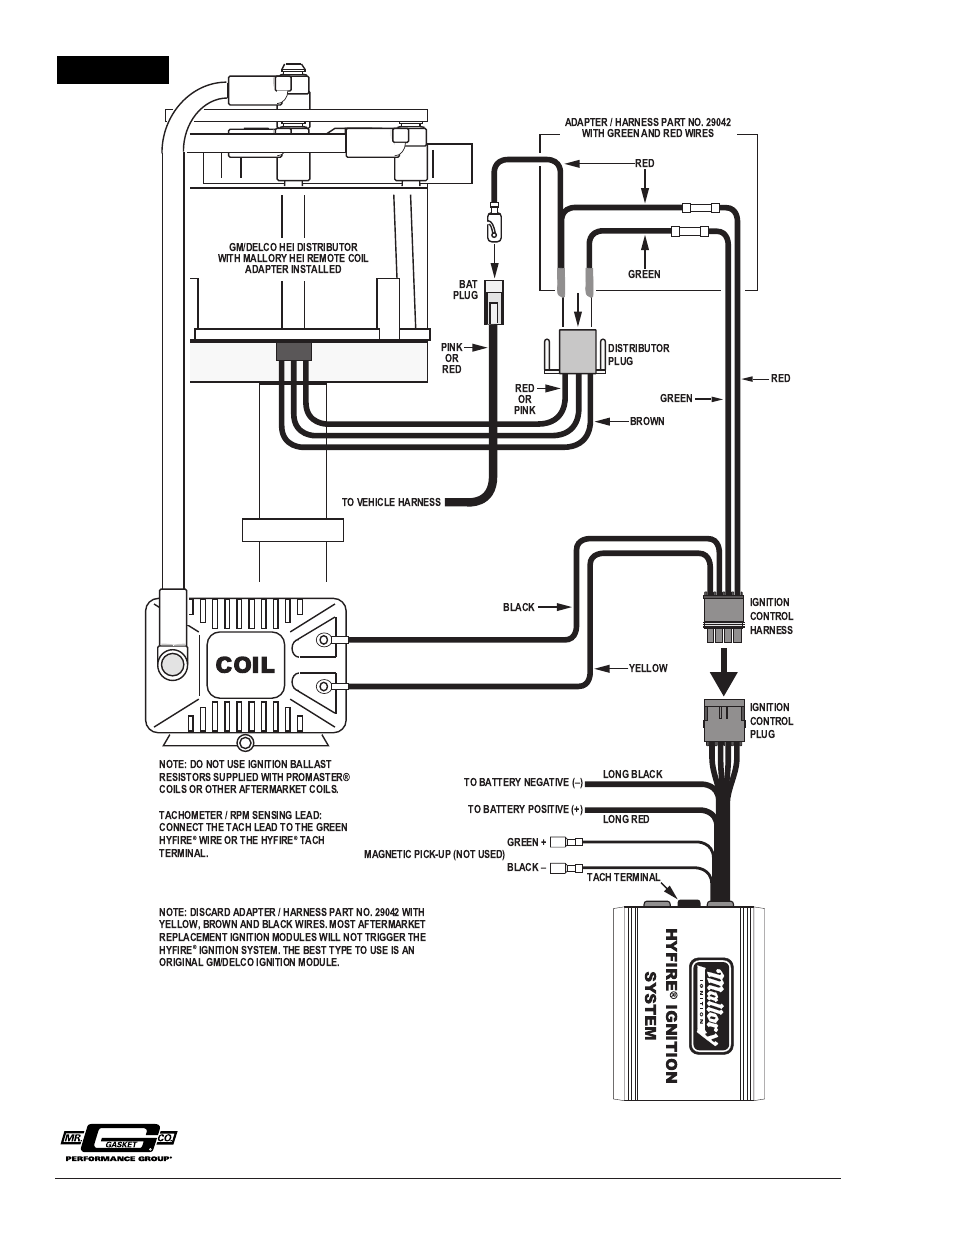 Mallory 6a Ignition Wiring Diagram - Wiring Data